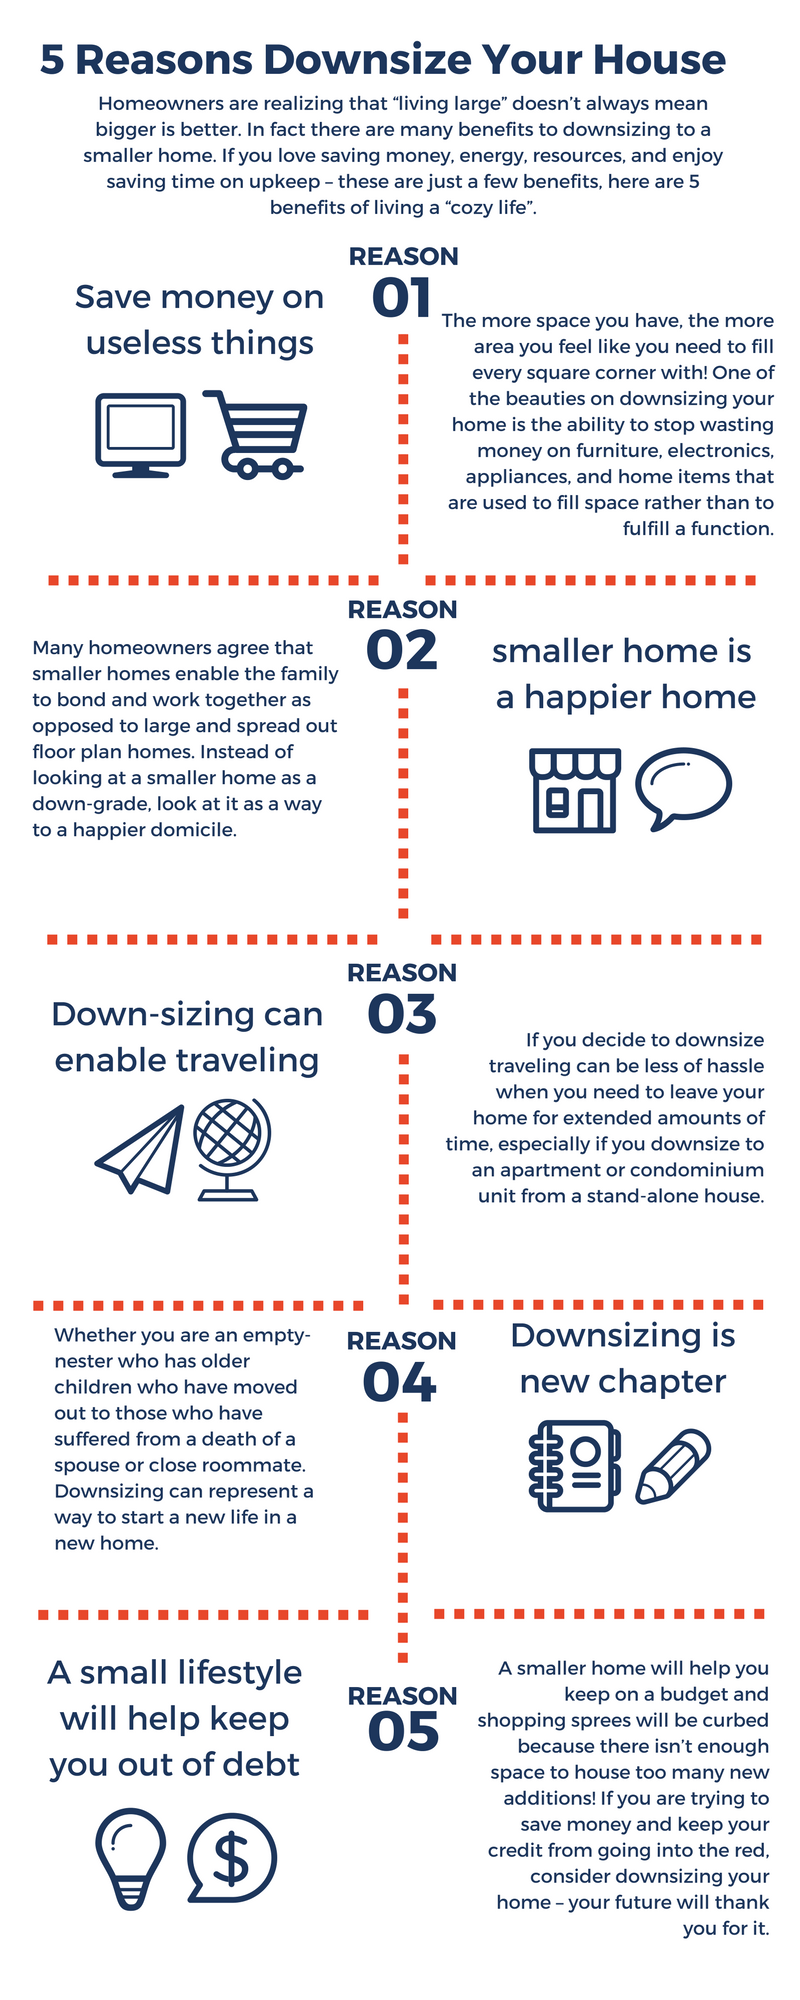 Here are quick to on how to downsize your house and your life.